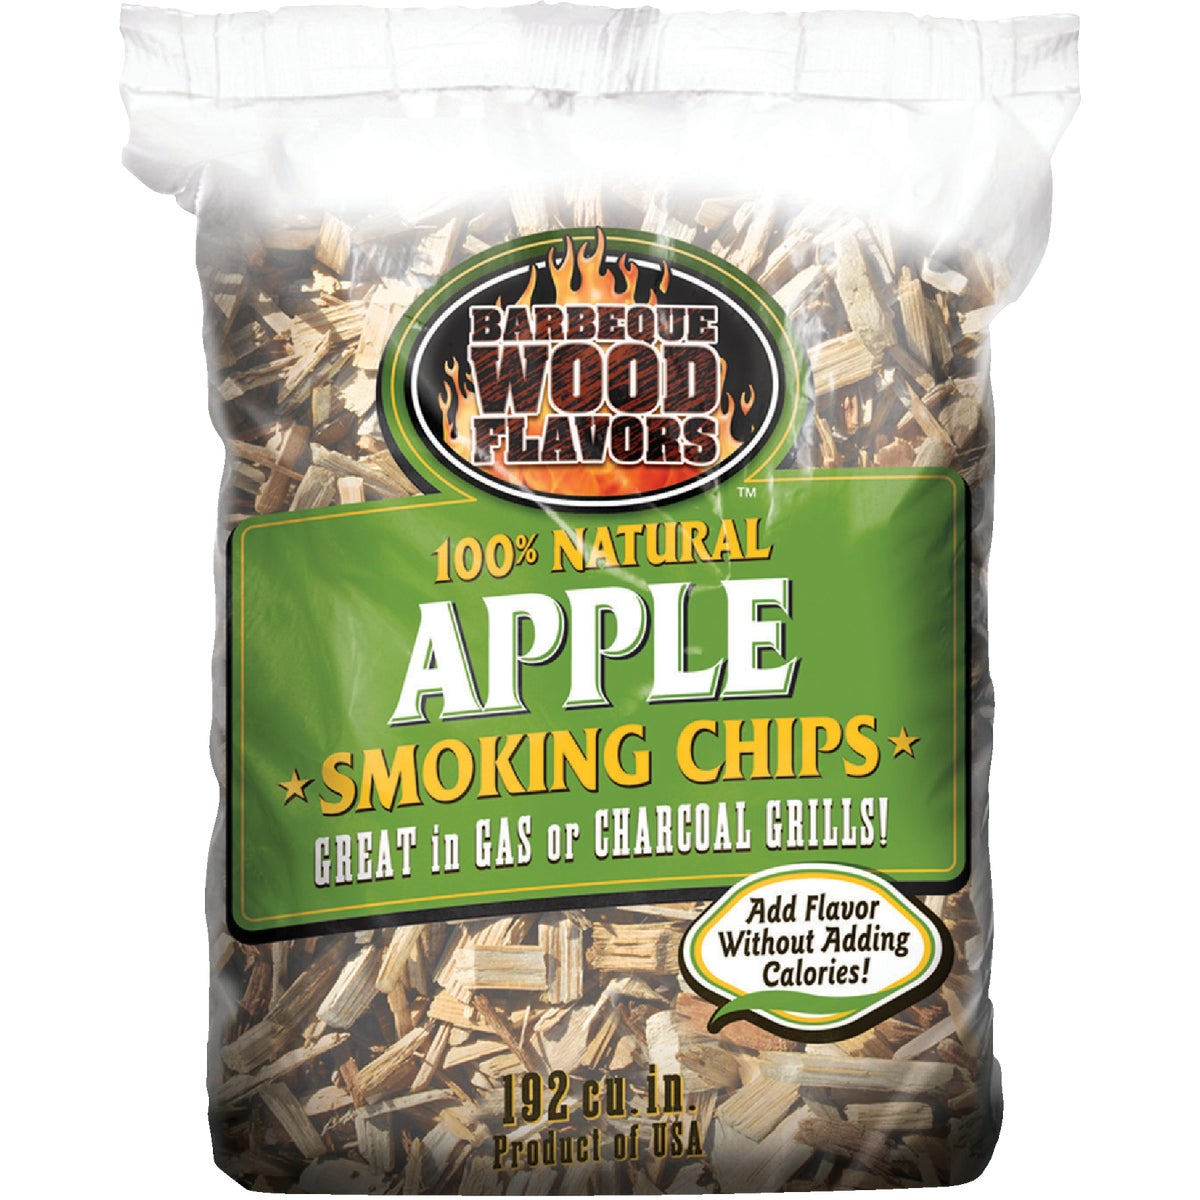 2.25LB APPLE WOOD CHIPS - 60010 by Barbeque Wood Flavor